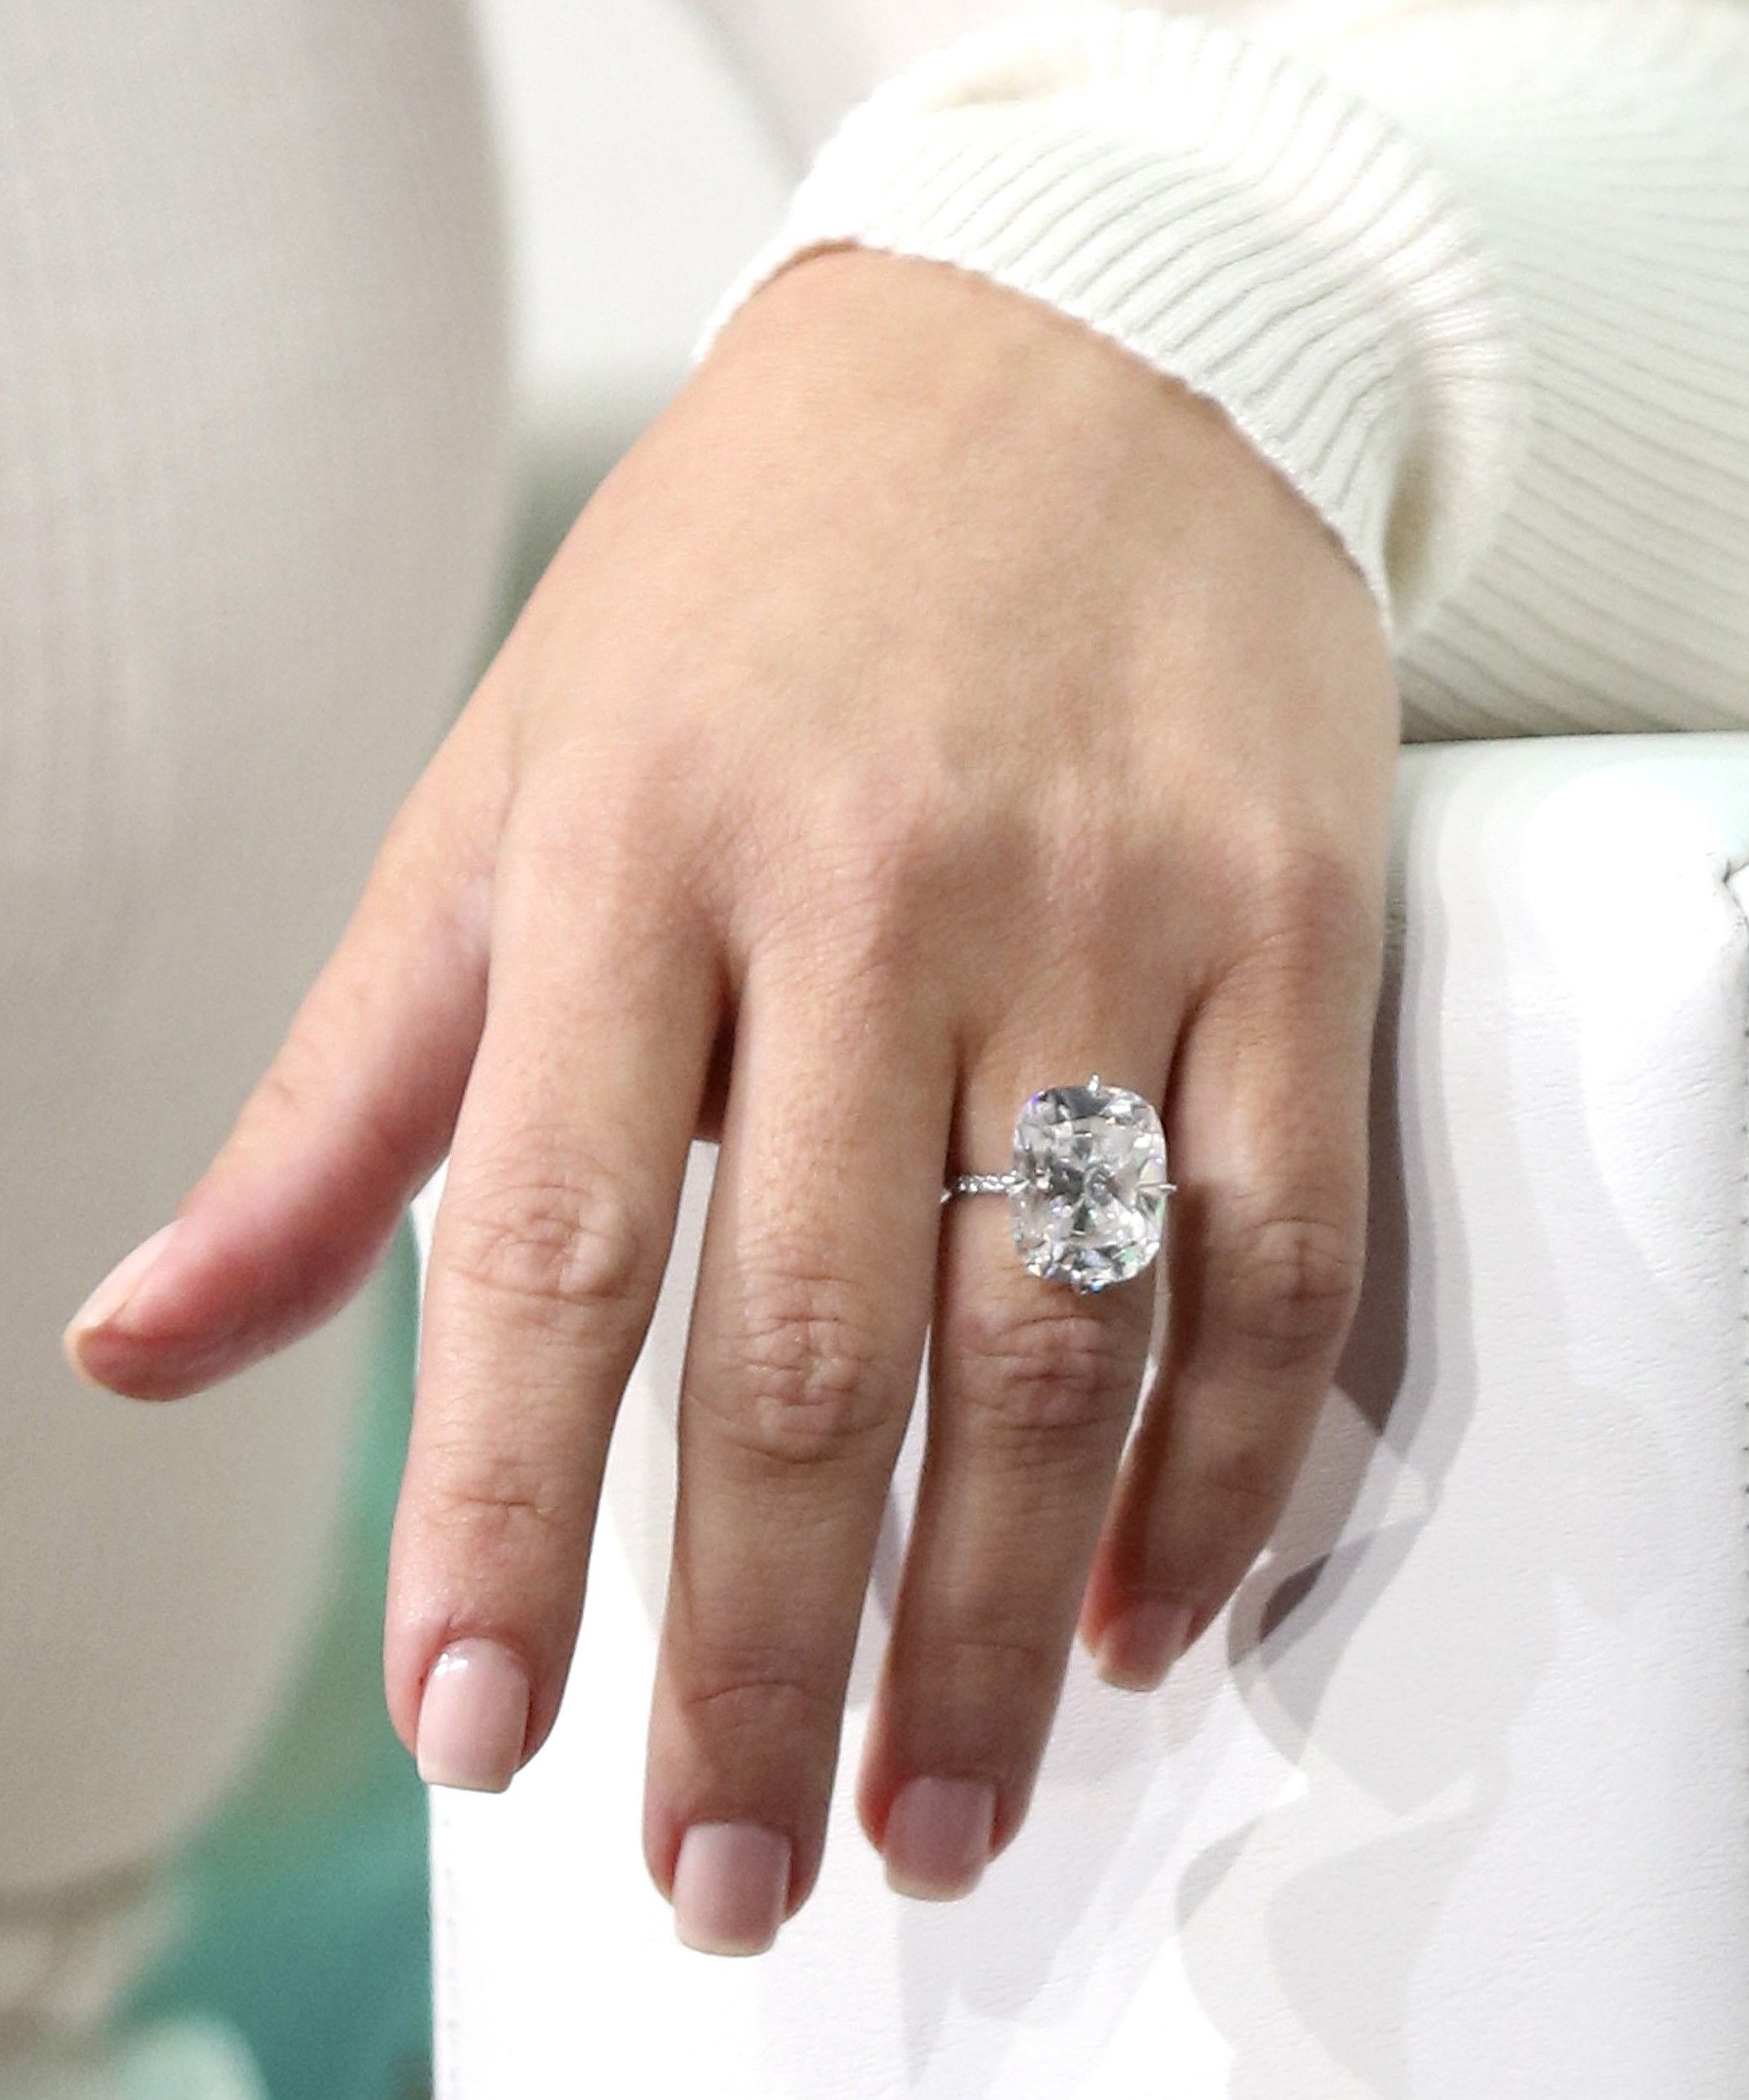 Ordinaire Kim Kardashian Has A New Ring That Looks Exactly Like Her Engagement Ring  Via @WhoWhatWear